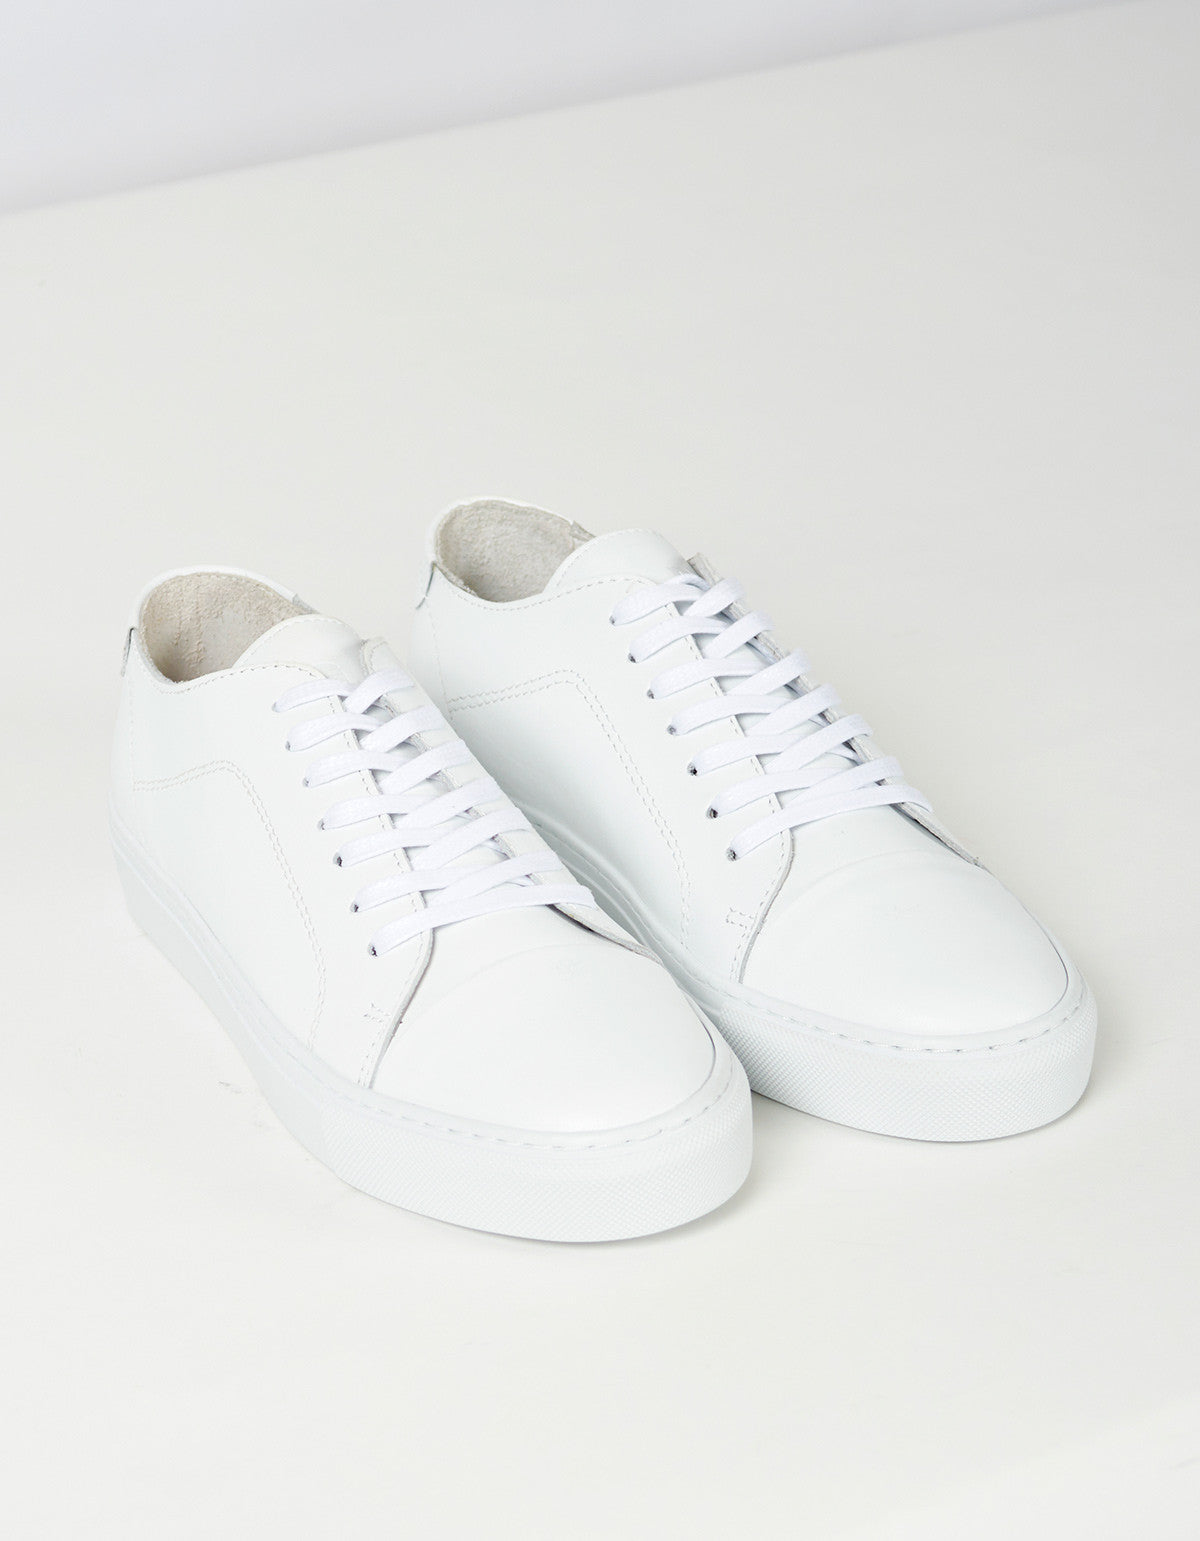 Garment Project Classic Lace Sneaker White - Still Life - 3